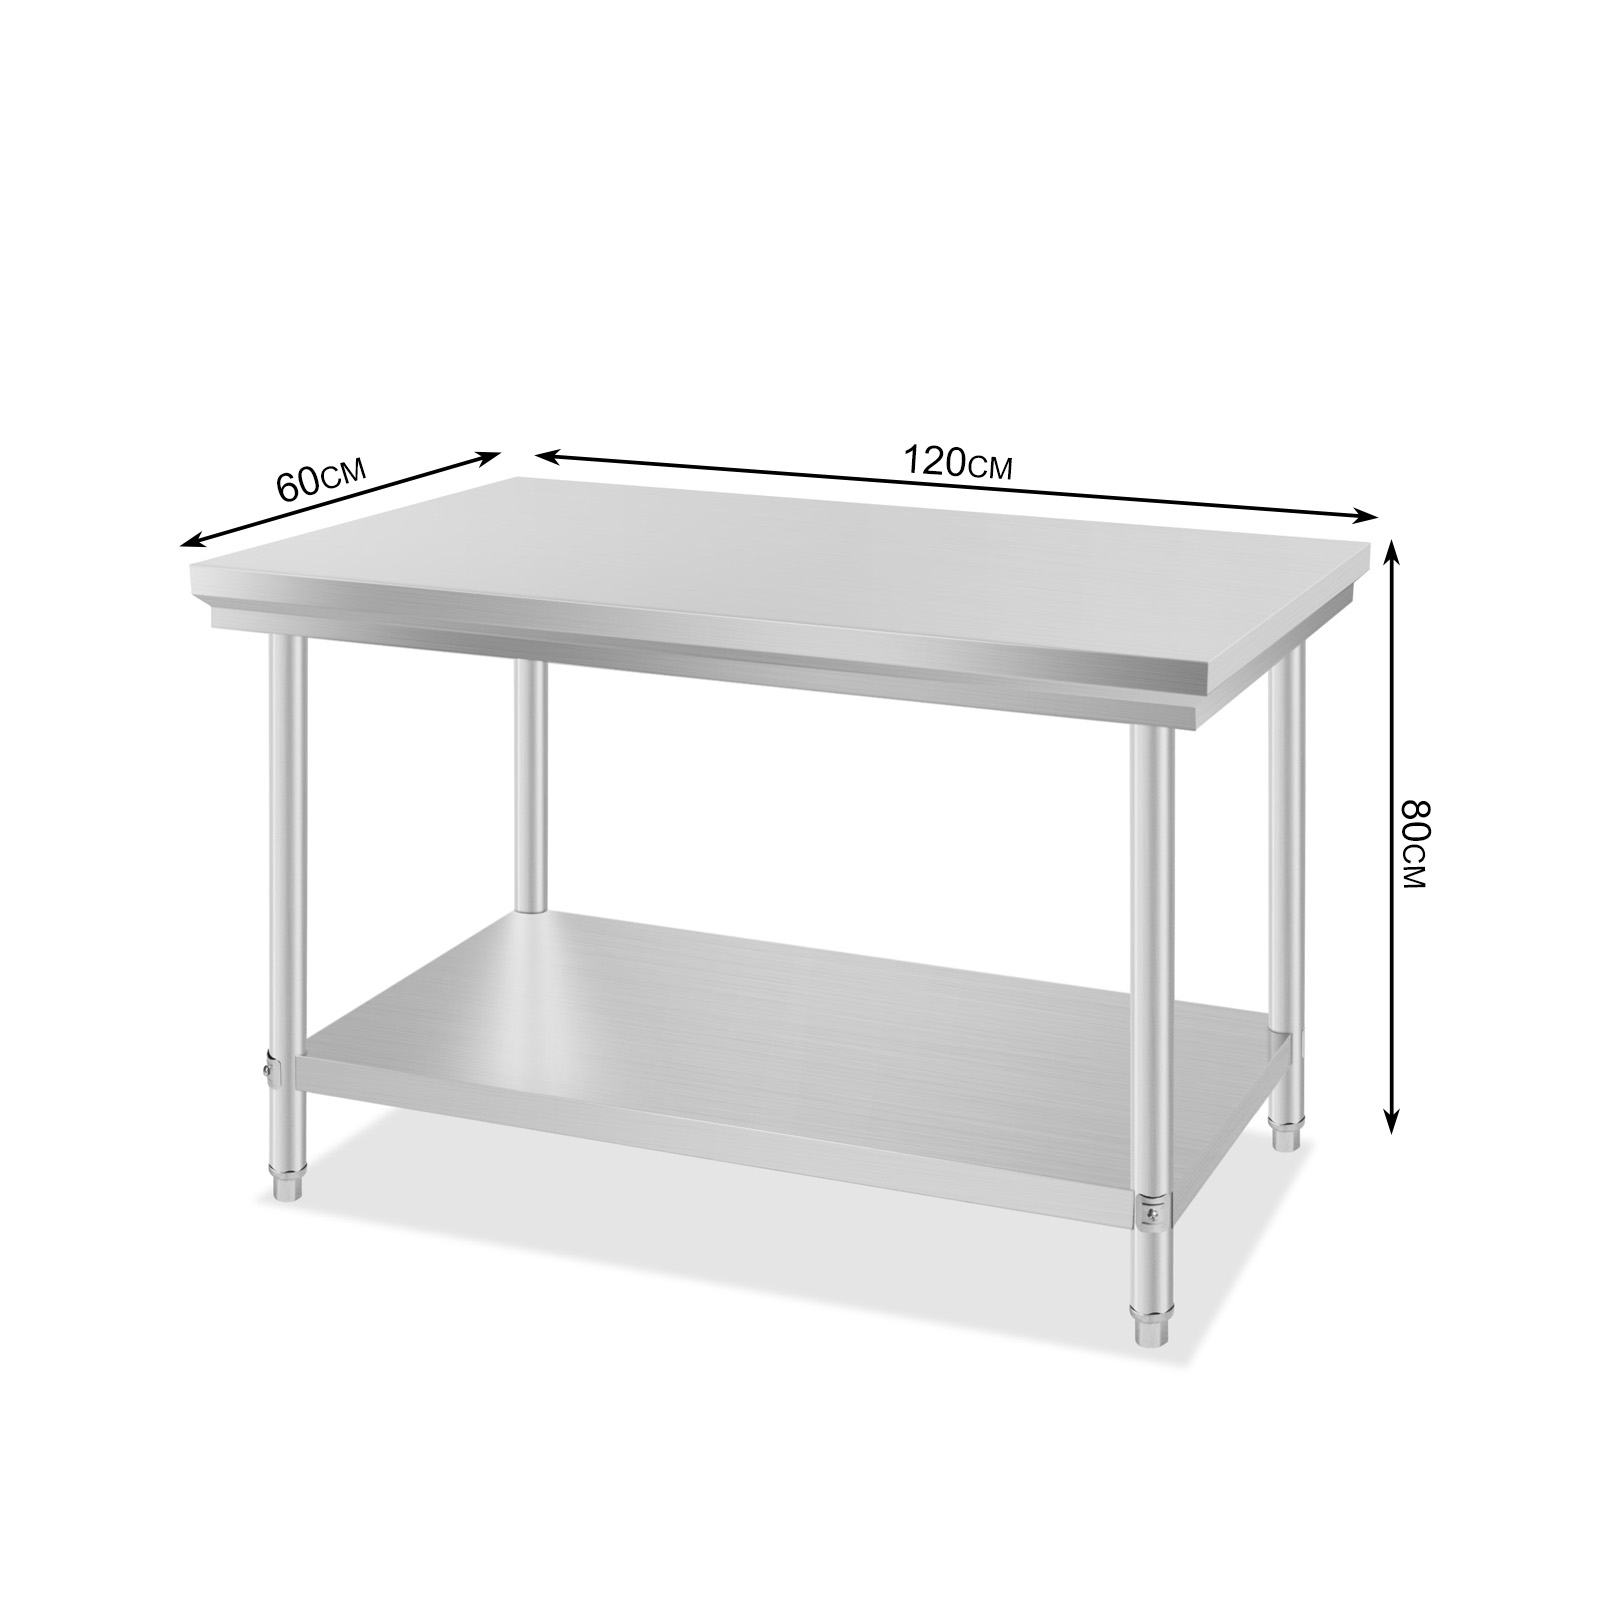 prep tables for kitchen wall mounted faucets commercial stainless steel food work table